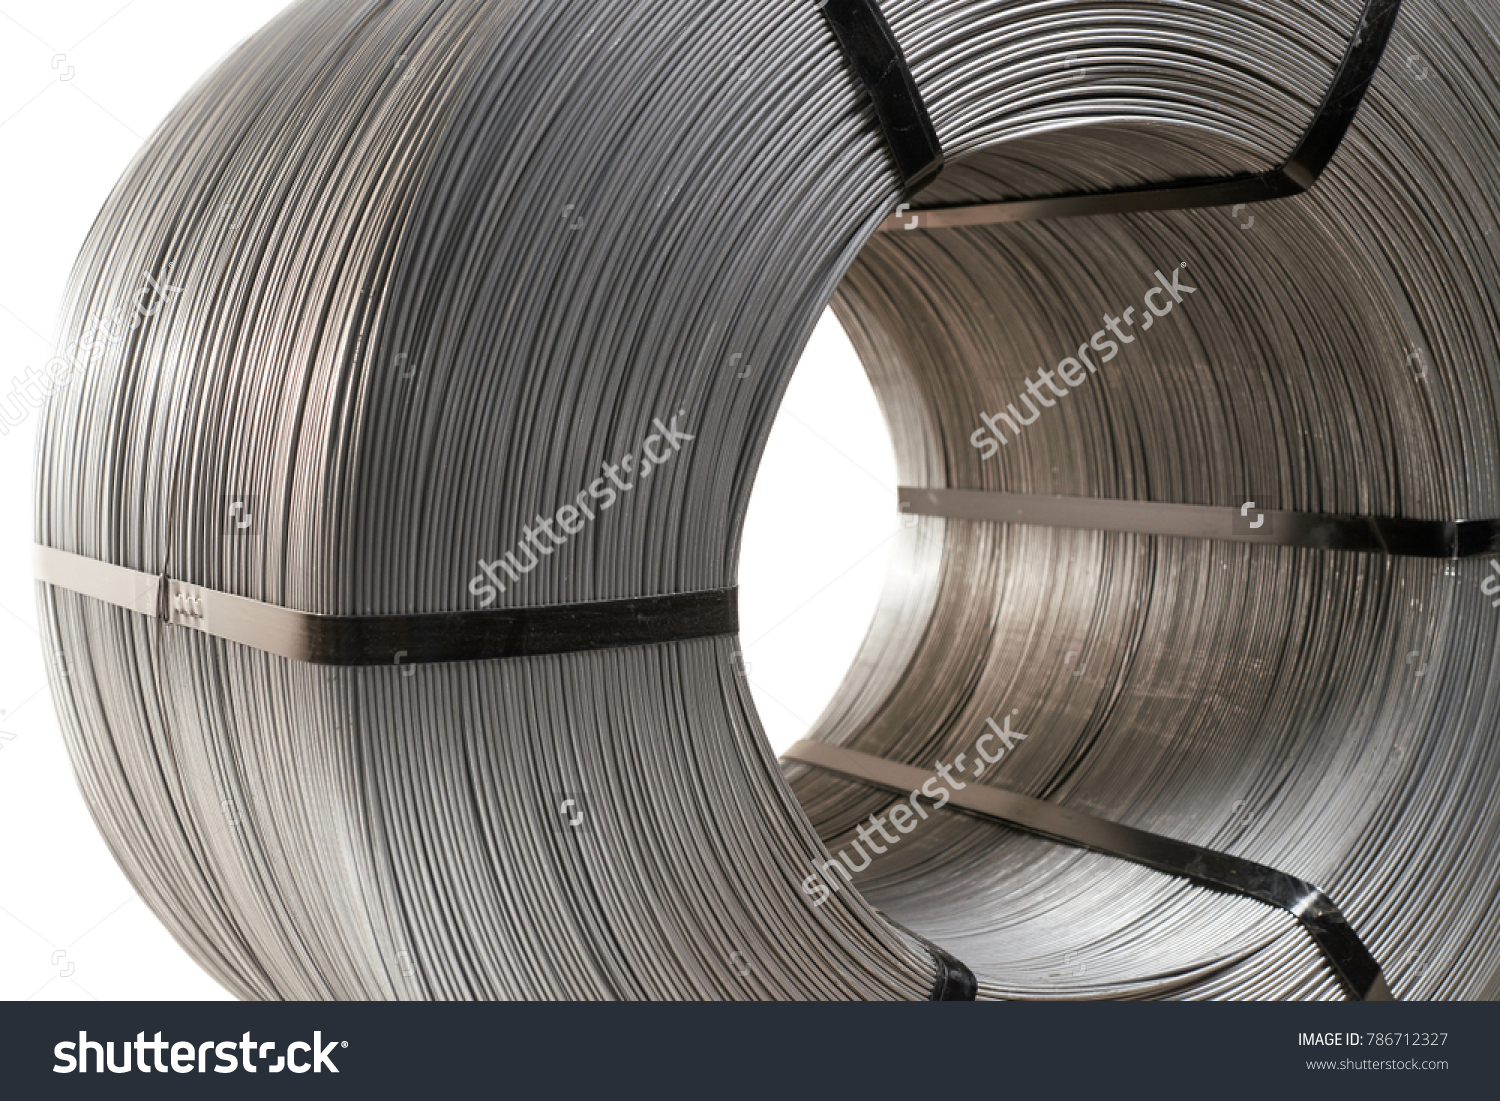 Steel Wire Coil Closeup Stock Photo & Image (Royalty-Free) 786712327 ...